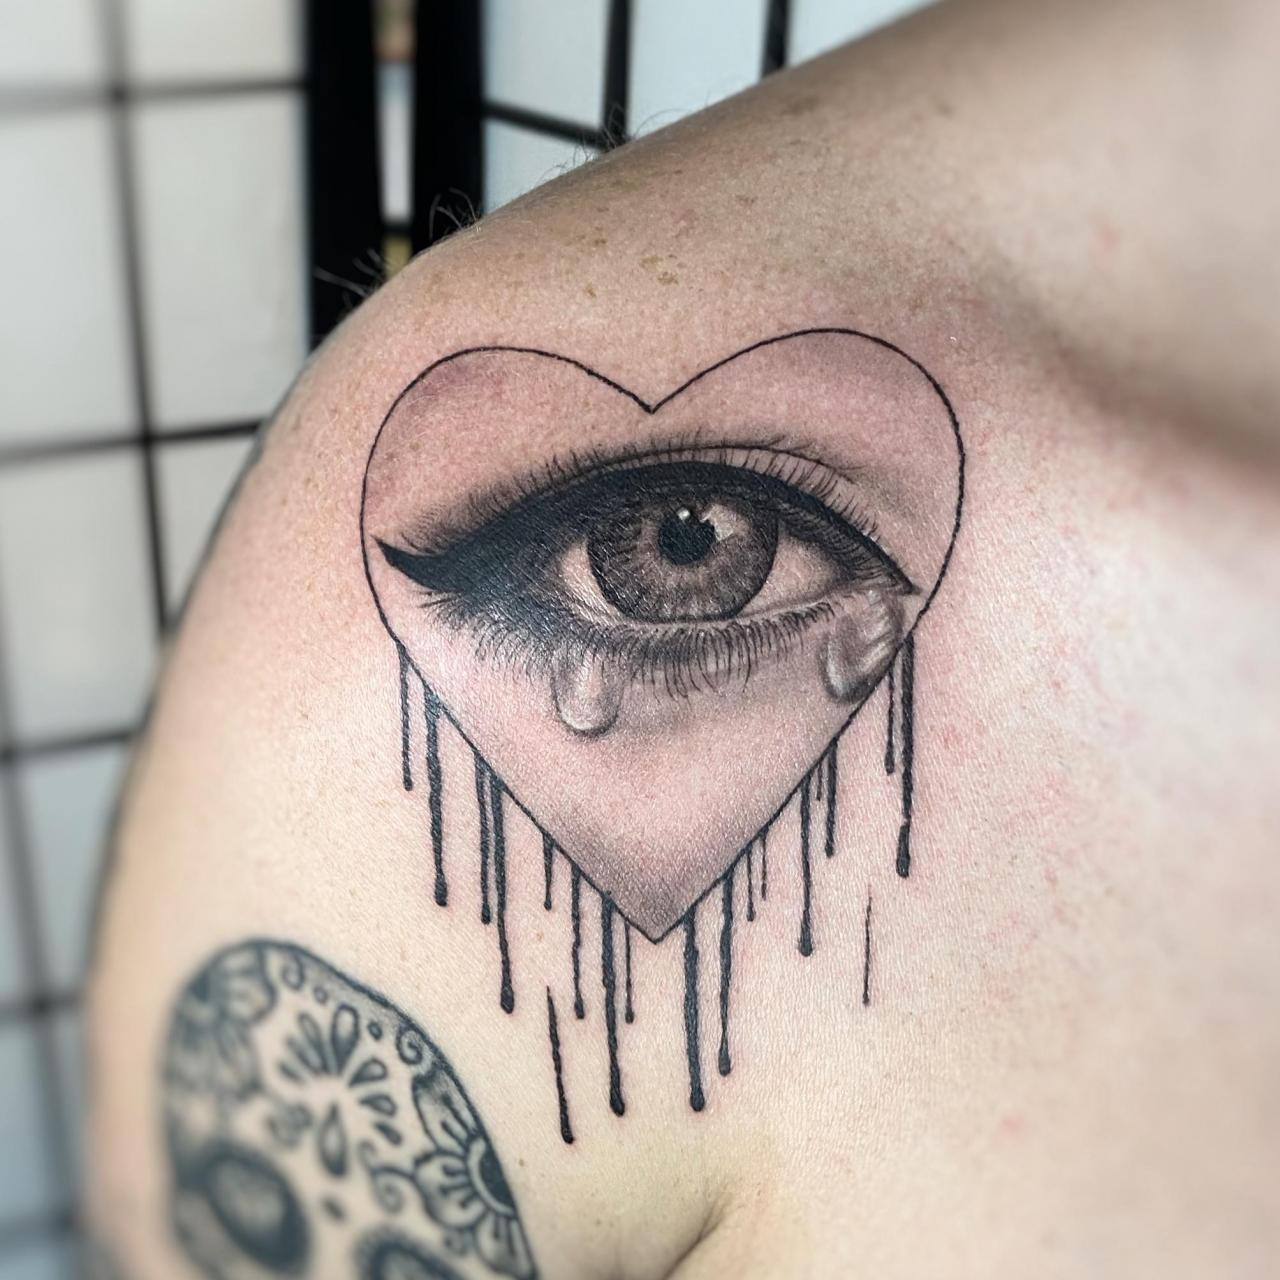 Crying heart by me, Olivia Hartranft, Boston Tattoo Company